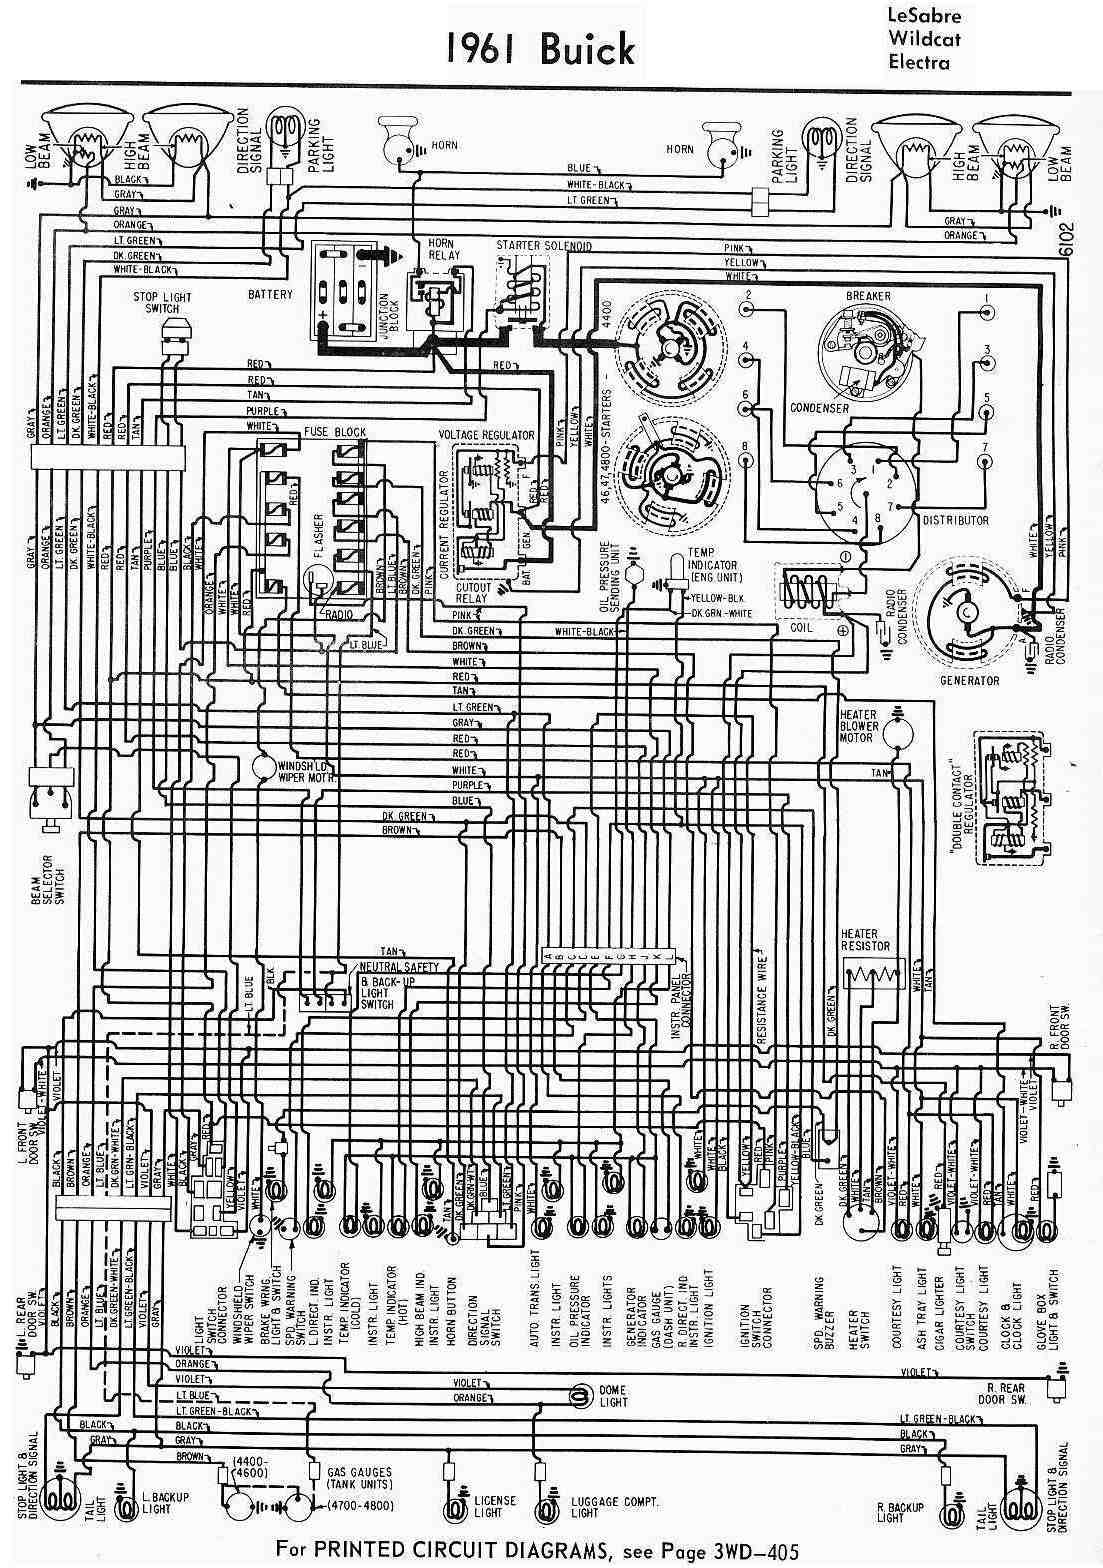 medium resolution of 1989 buick electra wiring diagram data diagram schematic1989 buick electra wiring diagram data wiring diagram 1989